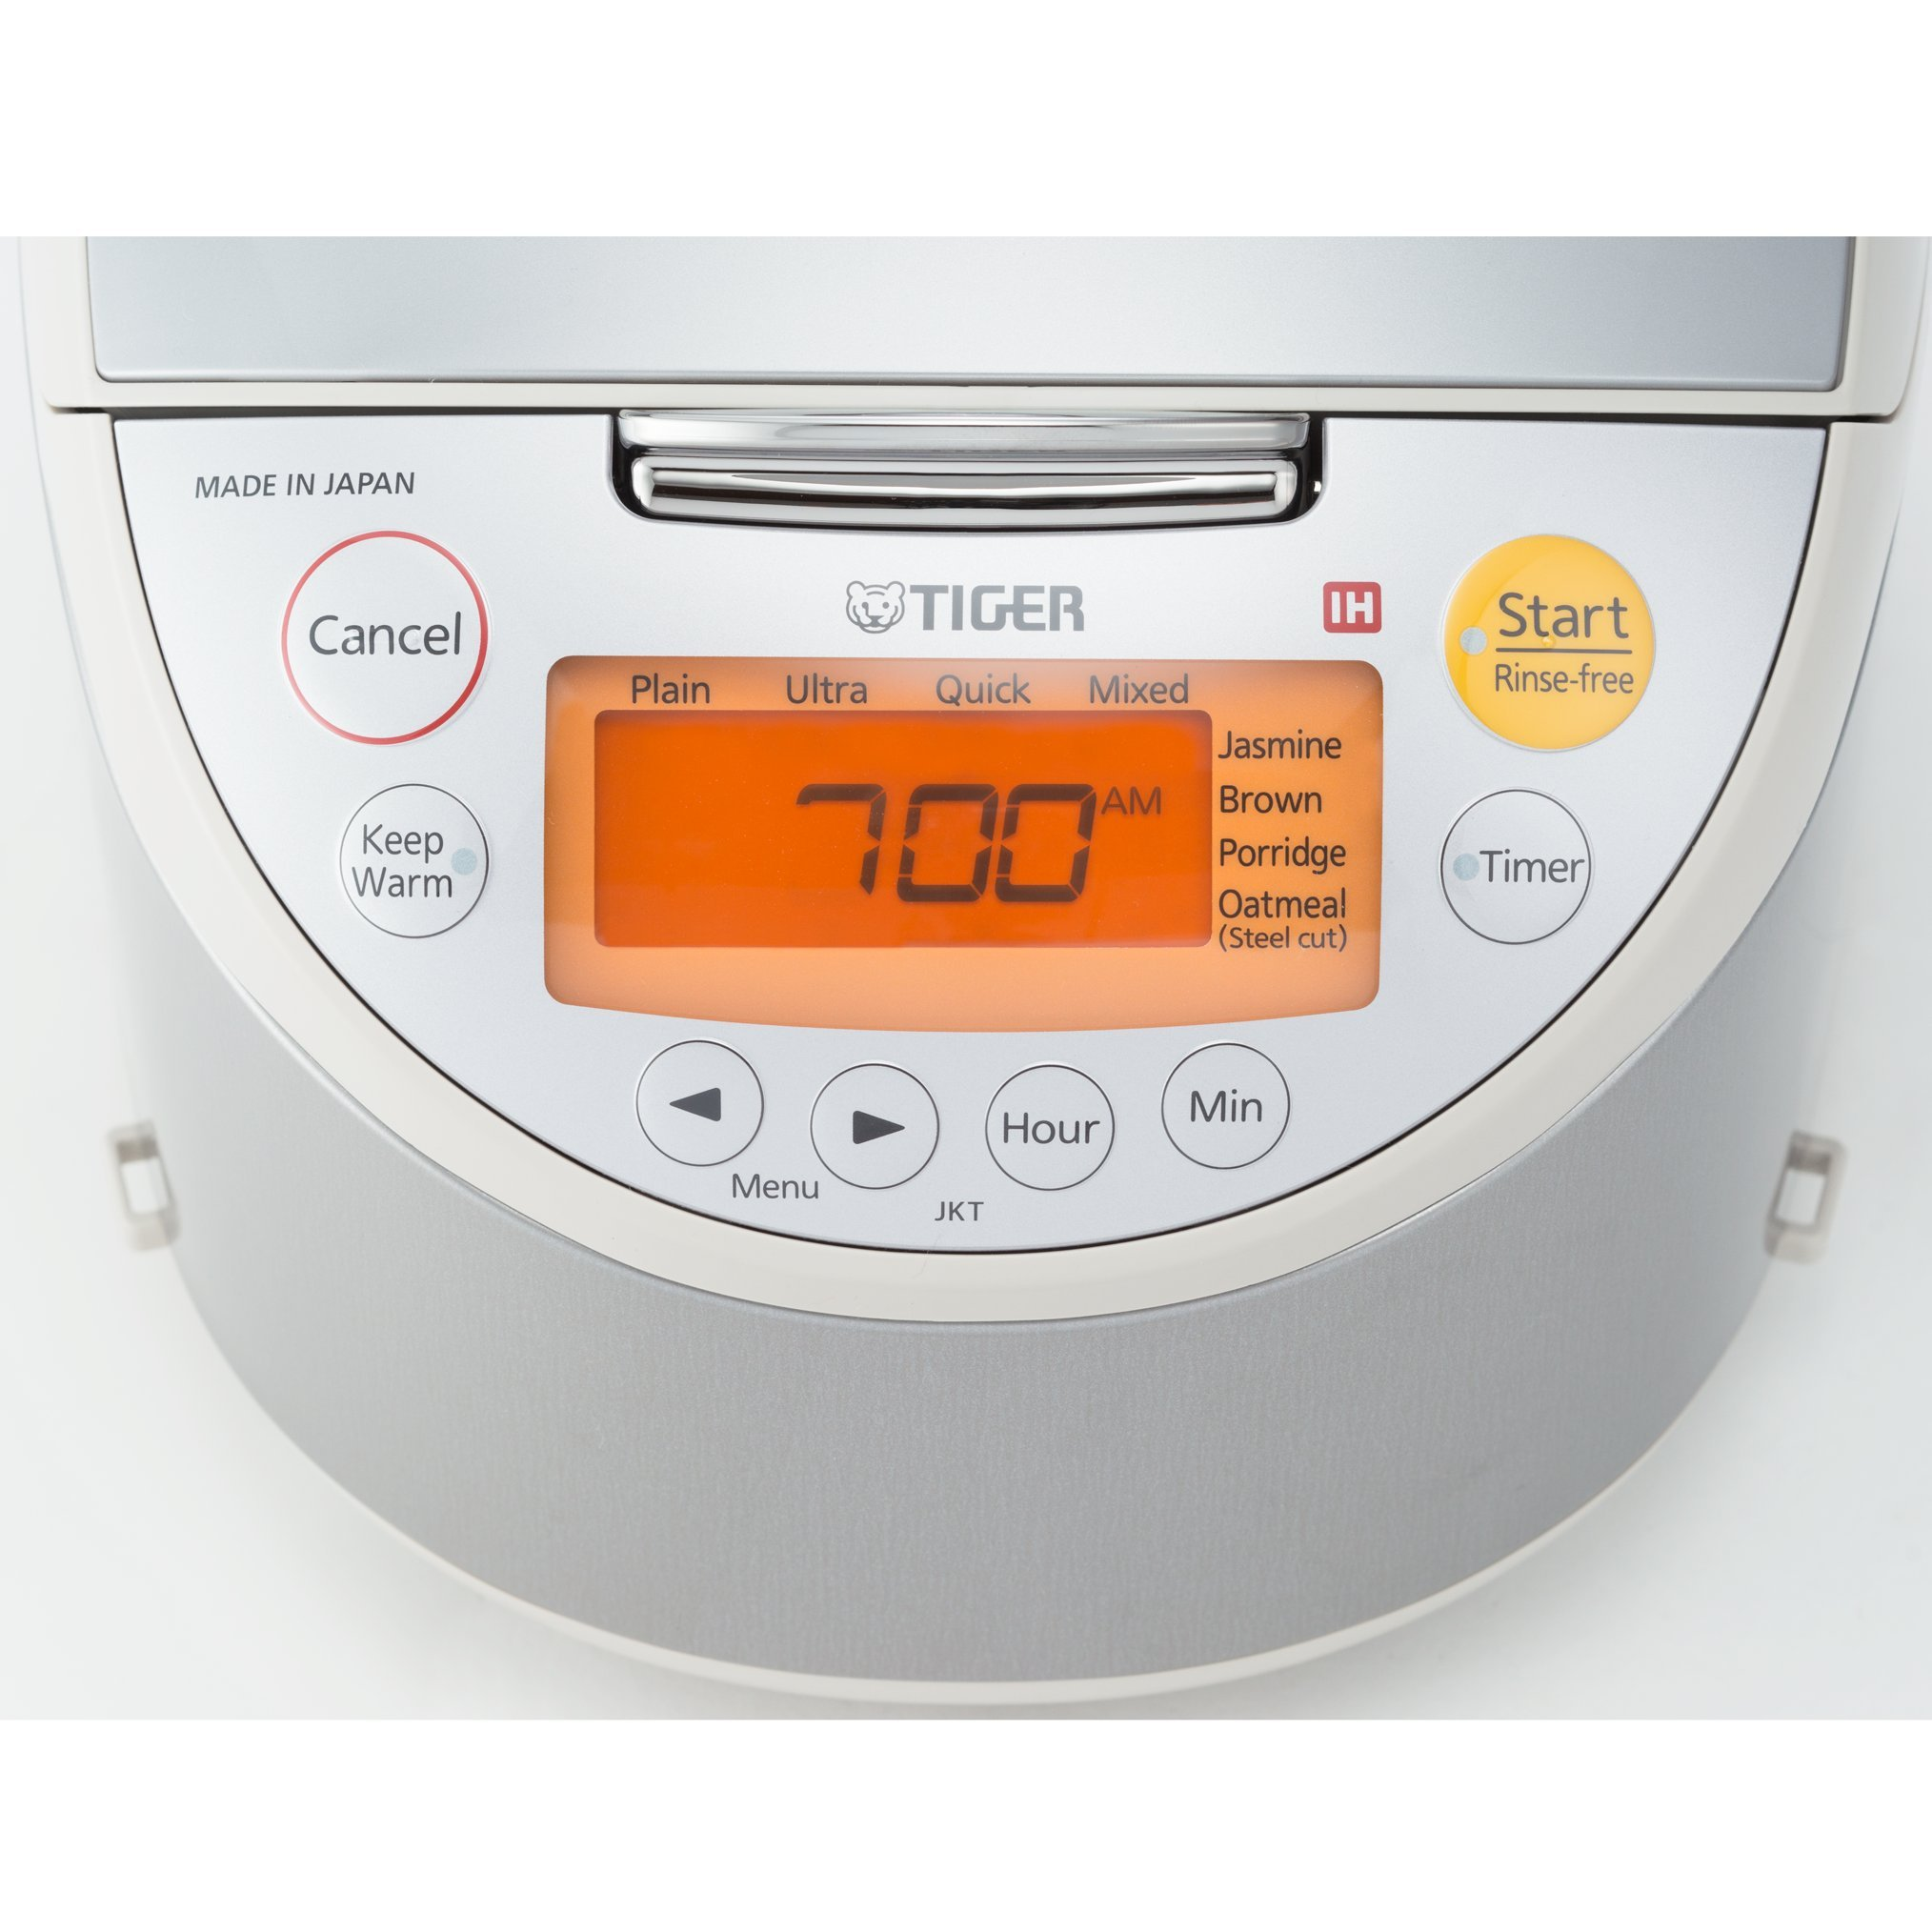 Tiger JKT-B10U-C 5.5-Cup Stainless Steel Rice Cooker, Beige by Tiger Corporation (Image #6)